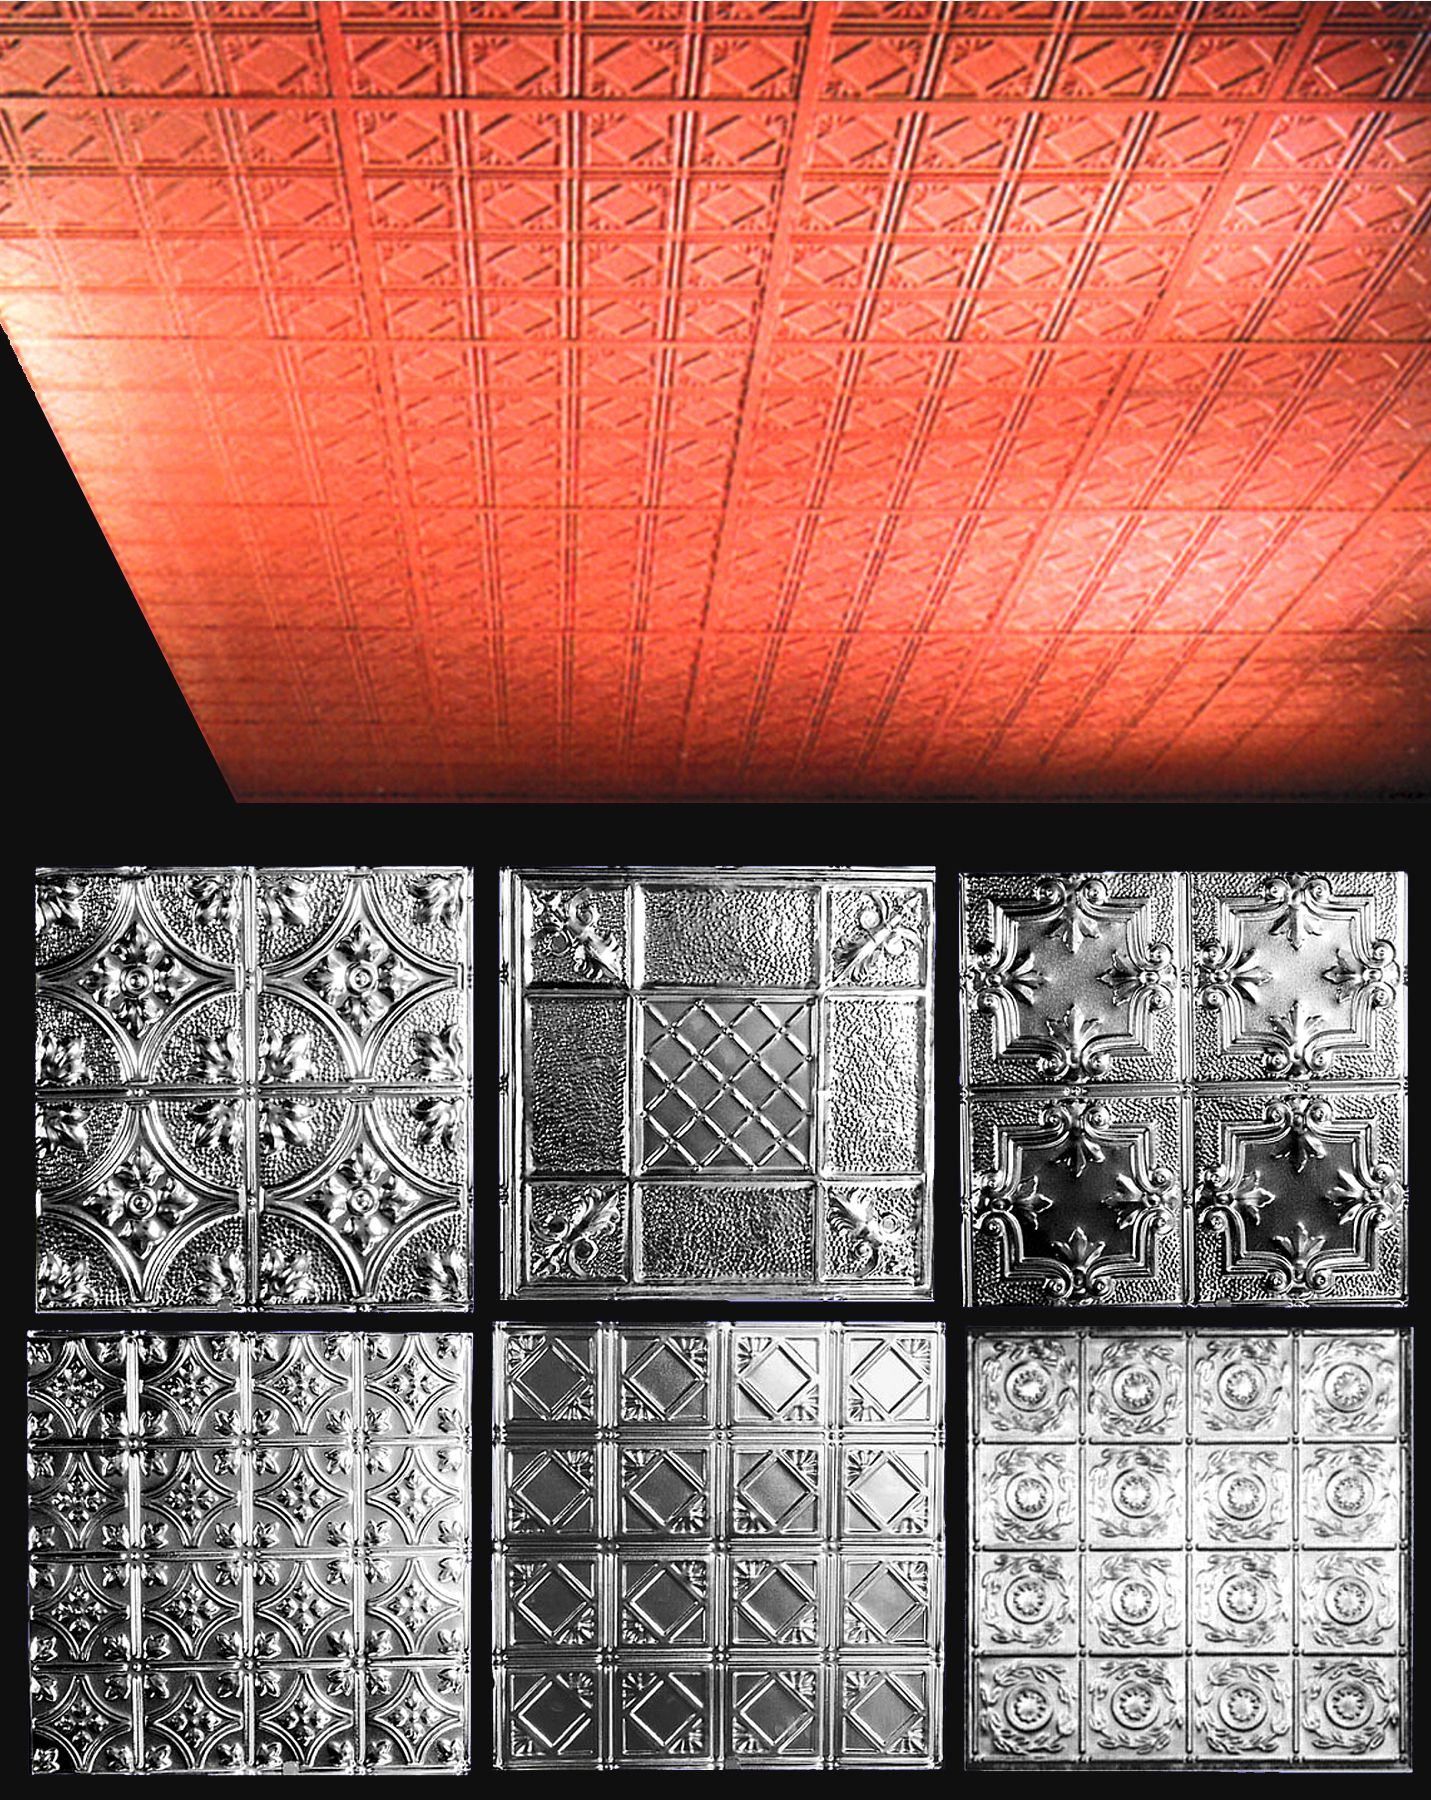 Outwater S Stamped Steel And Plastic Ceiling Tiles Convey